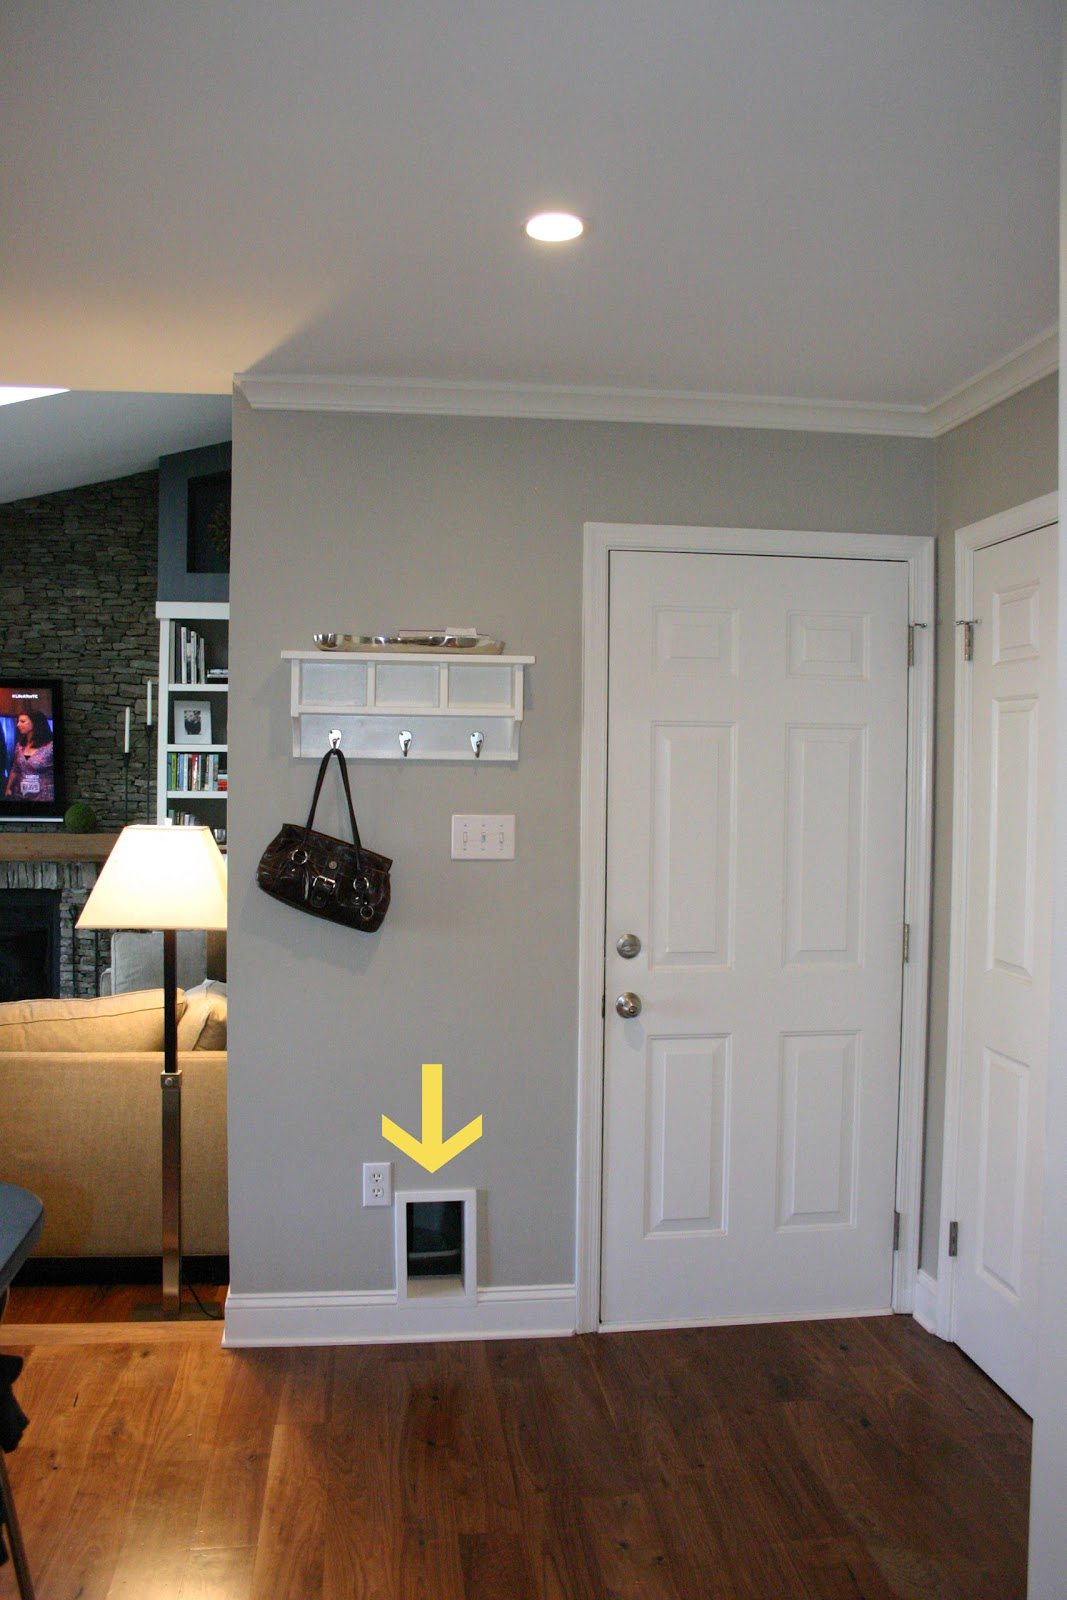 The Photo Above Was Taken While Standing In The Kitchen. The Door To The  Right Of The Hole Is The Door Leading Into The Garage.